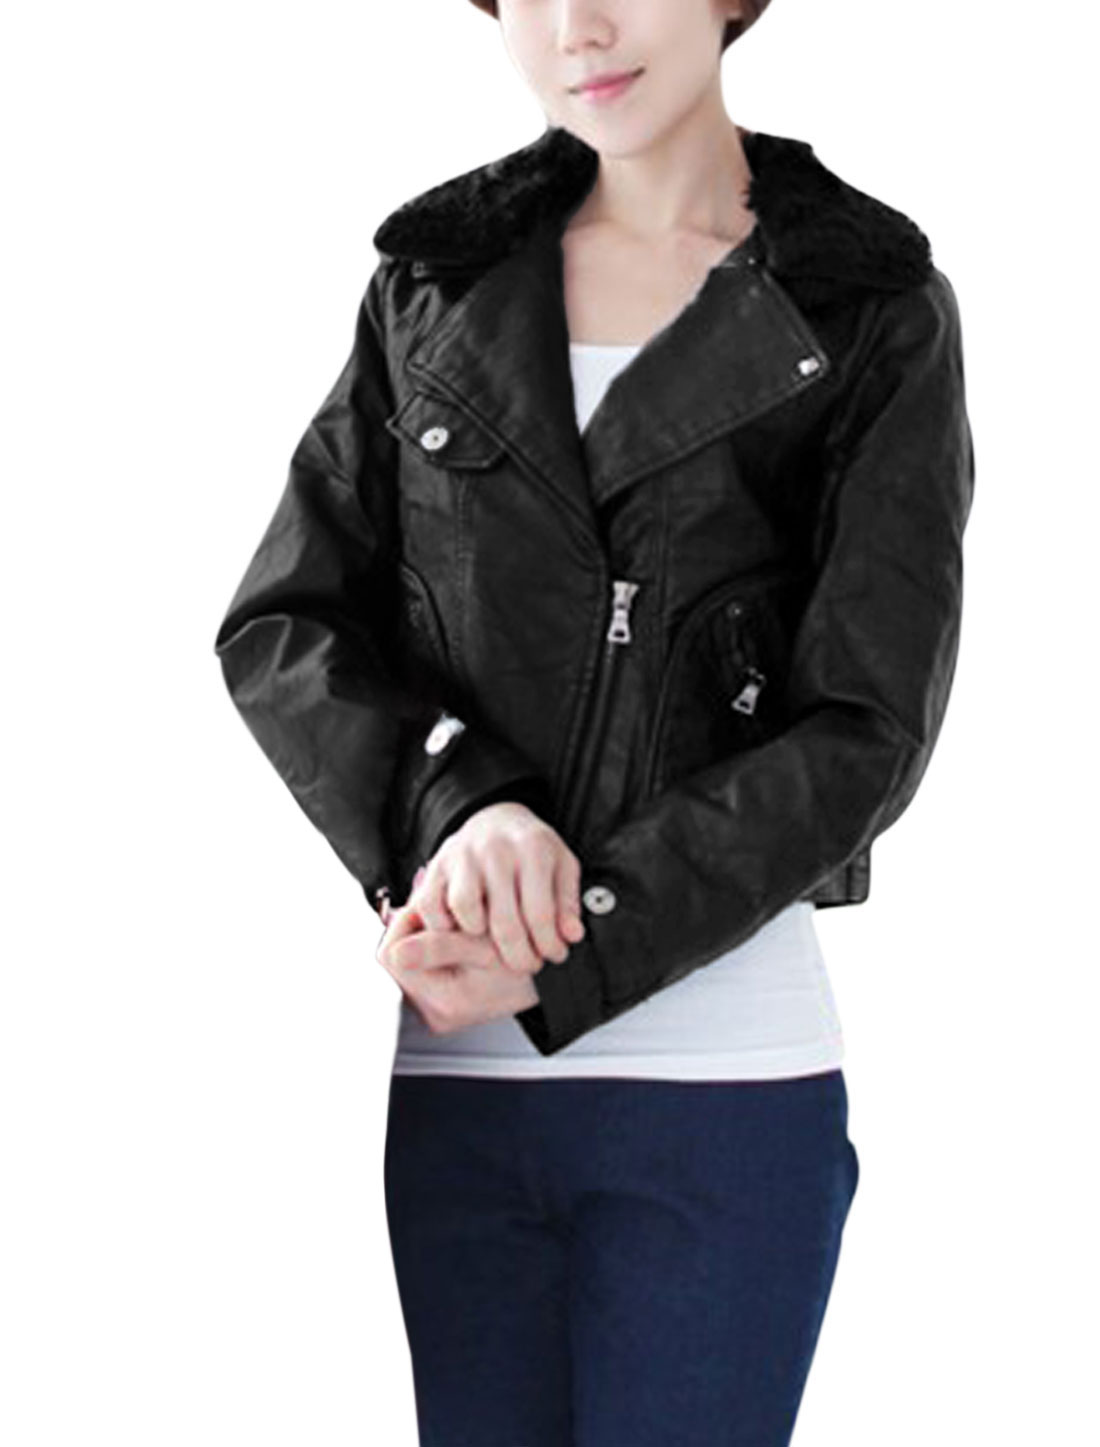 Women Zip Up Imitation Leather Jacket w Removable Spliced Collar Black M